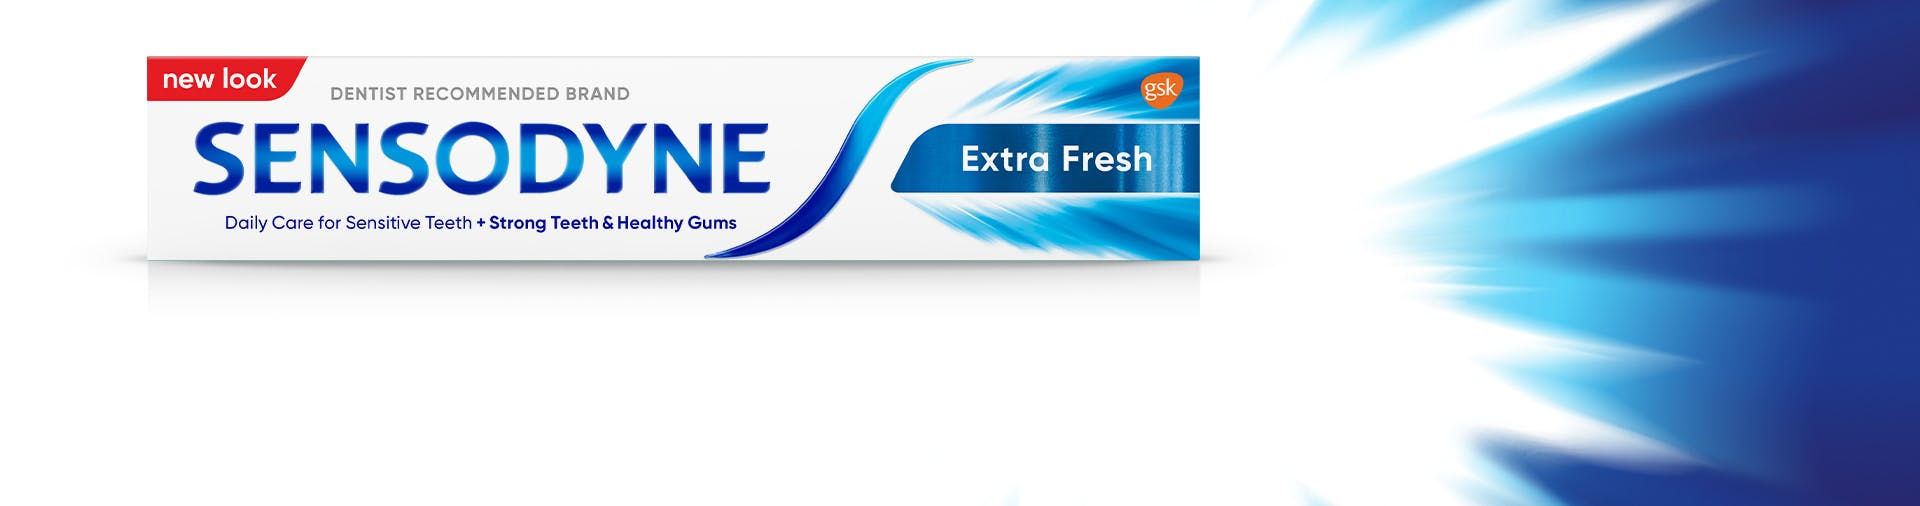 Sensitivity relief with long lasting fresh breath feeling imagery